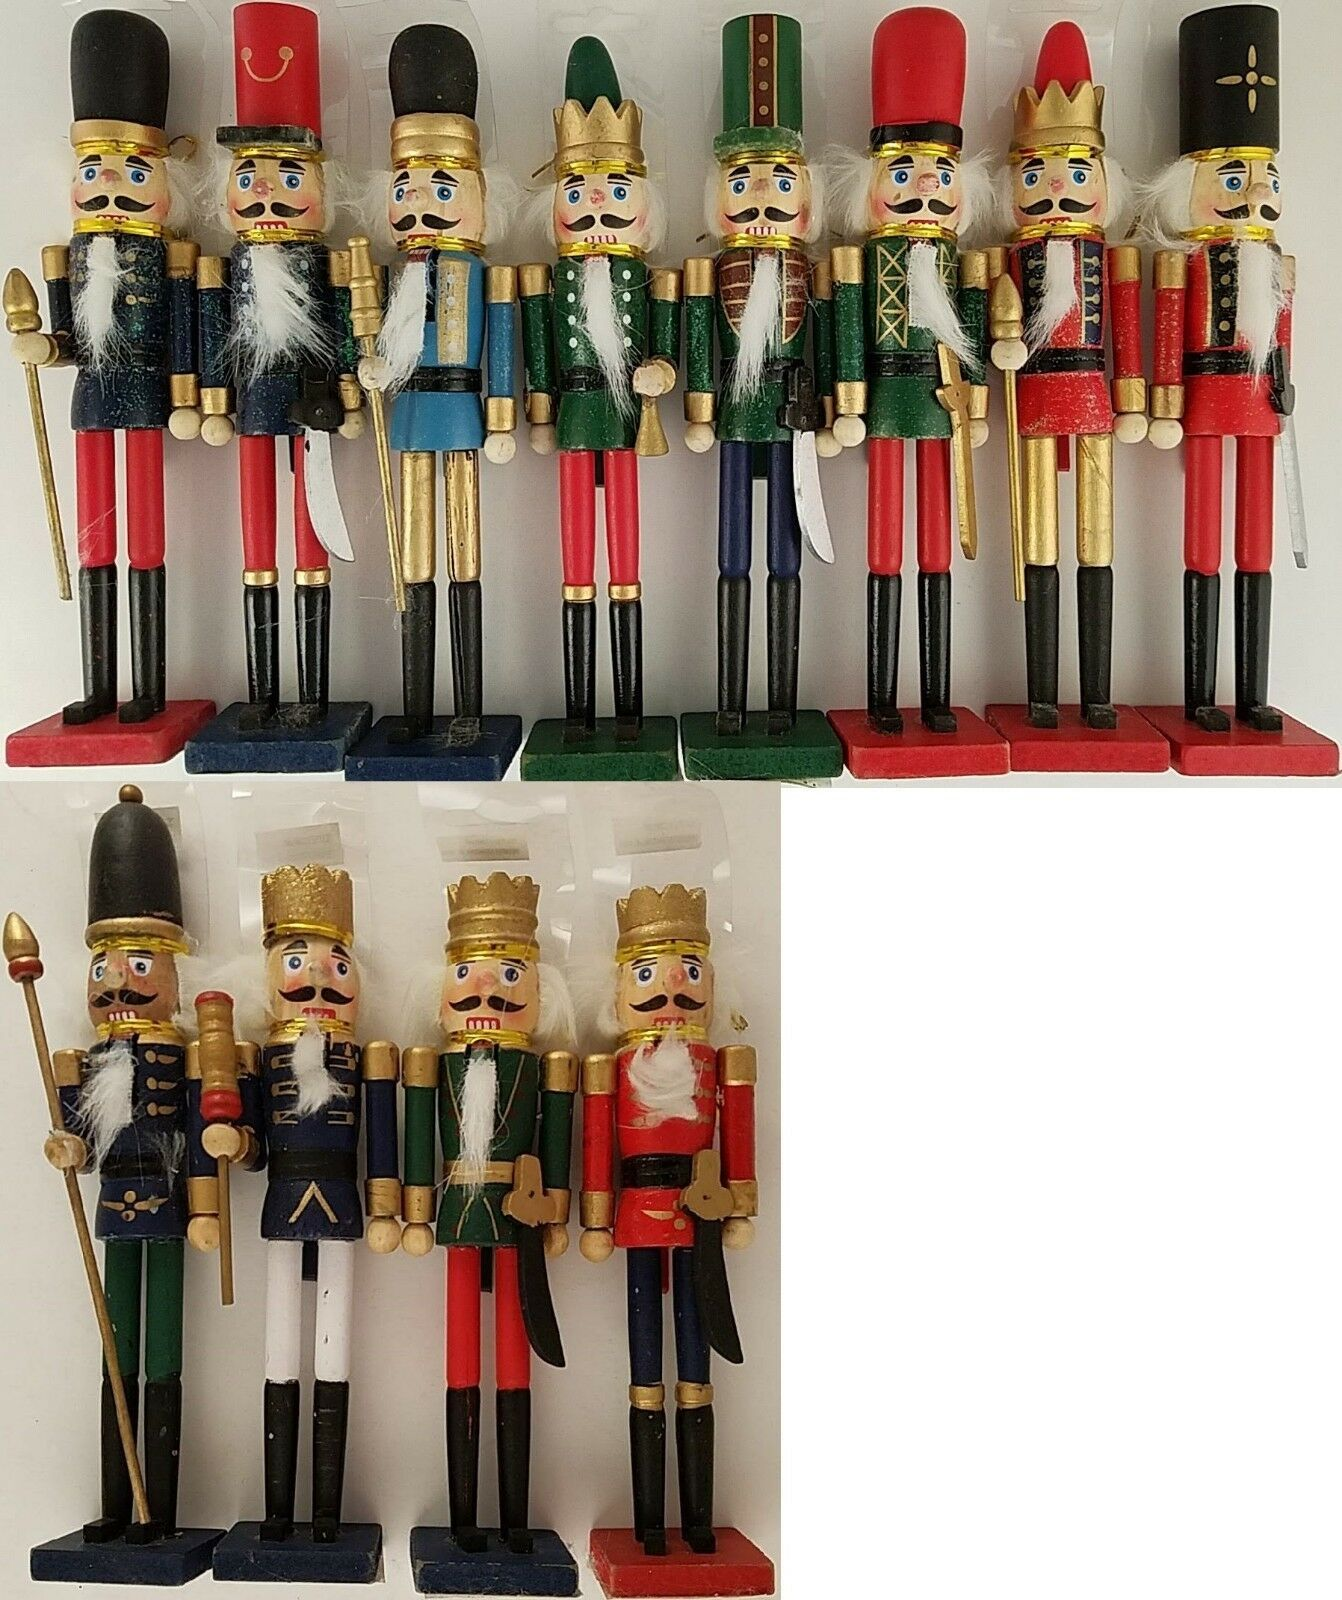 "Christmas Nutcracker Soldiers Wooden Decorations 9"", Select Colors - $4.99"